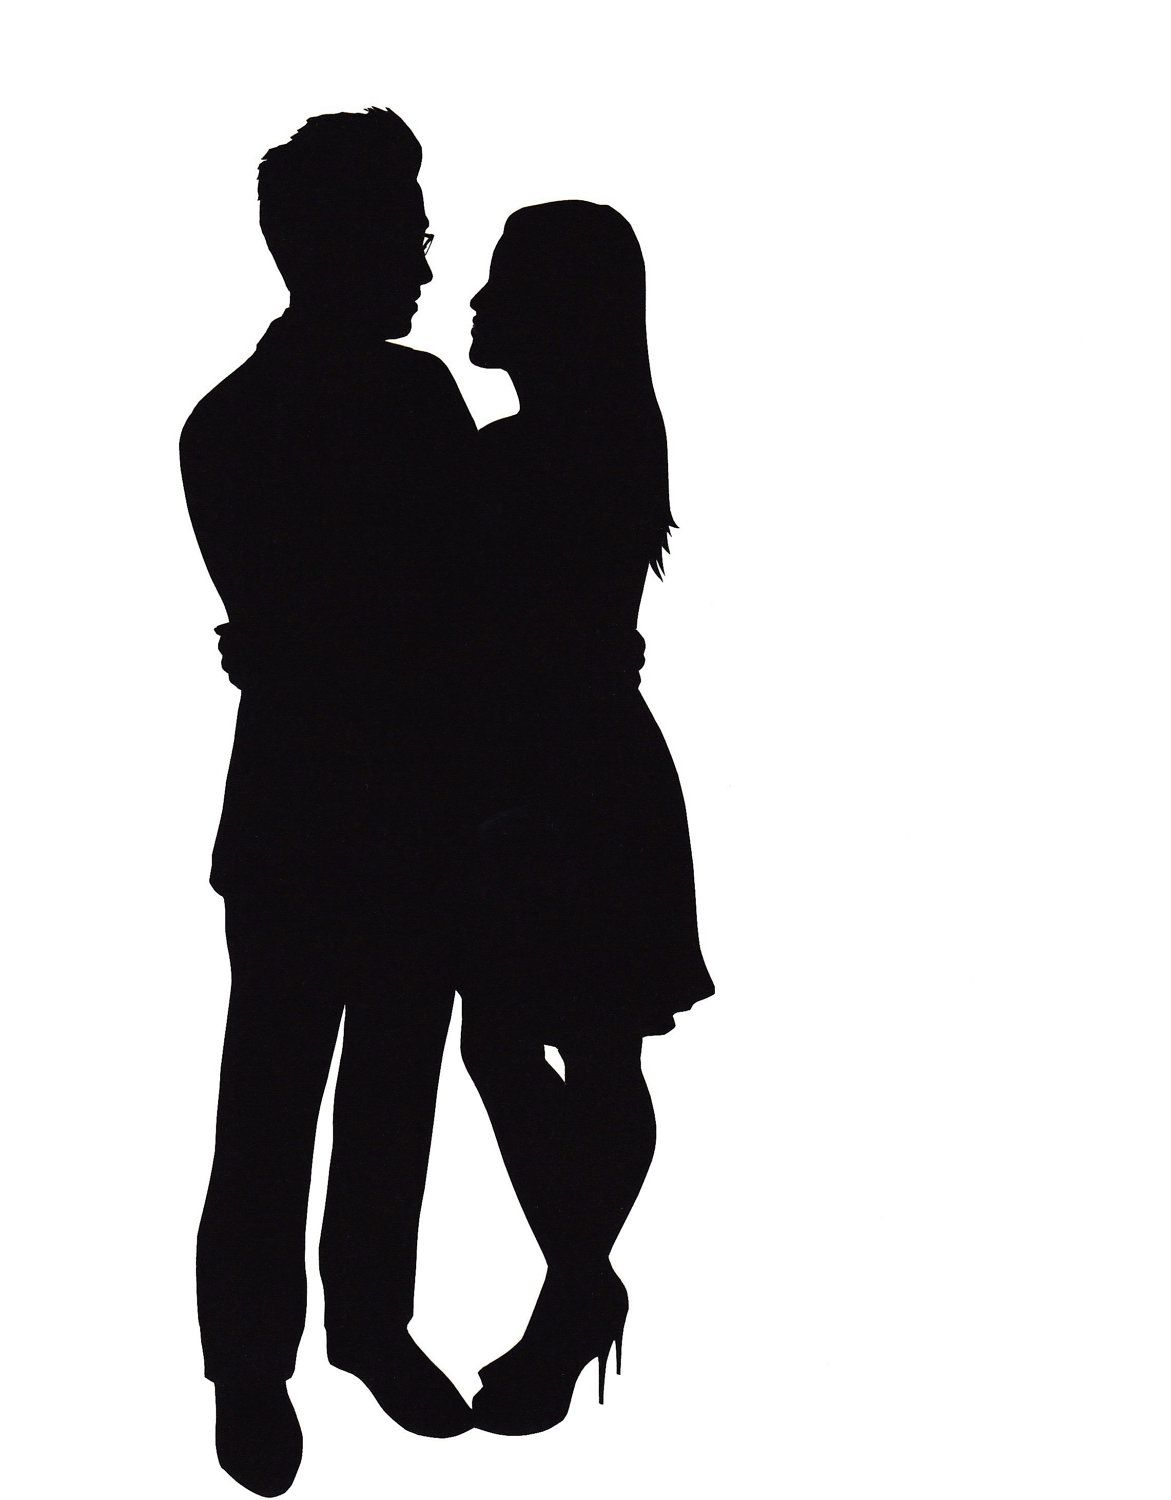 silhouette of a couple hugging - Google Search | Diy | Pinterest ... for Couple Silhouette Umbrella Kissing  110zmd